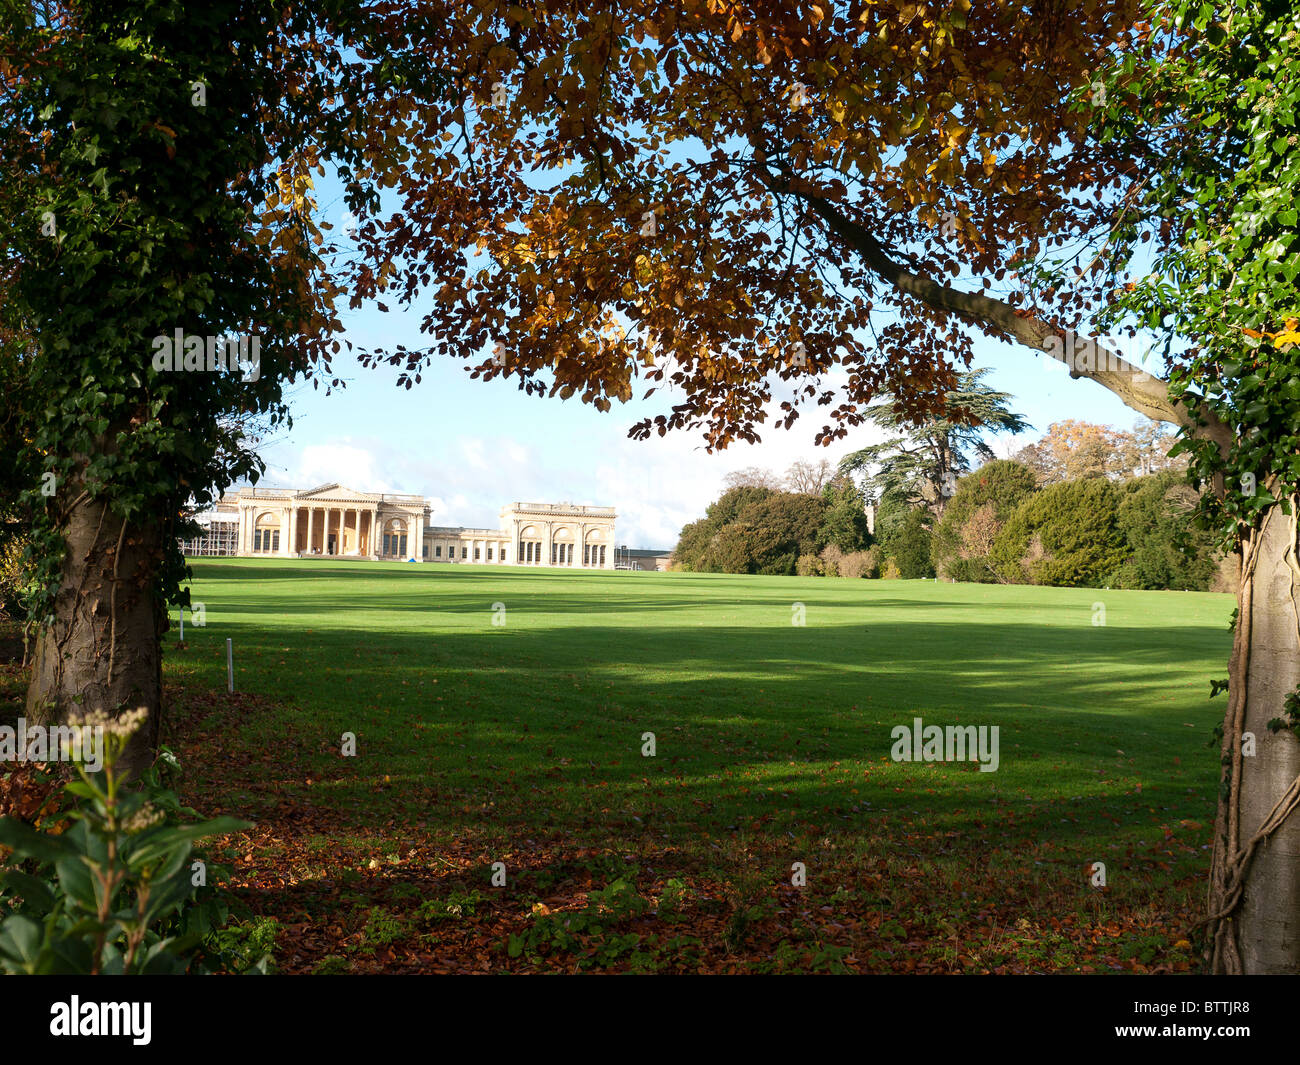 Stowe house and mansion in stowe landscape gardens buckingham stock stowe house and mansion in stowe landscape gardens buckingham bucks uk workwithnaturefo